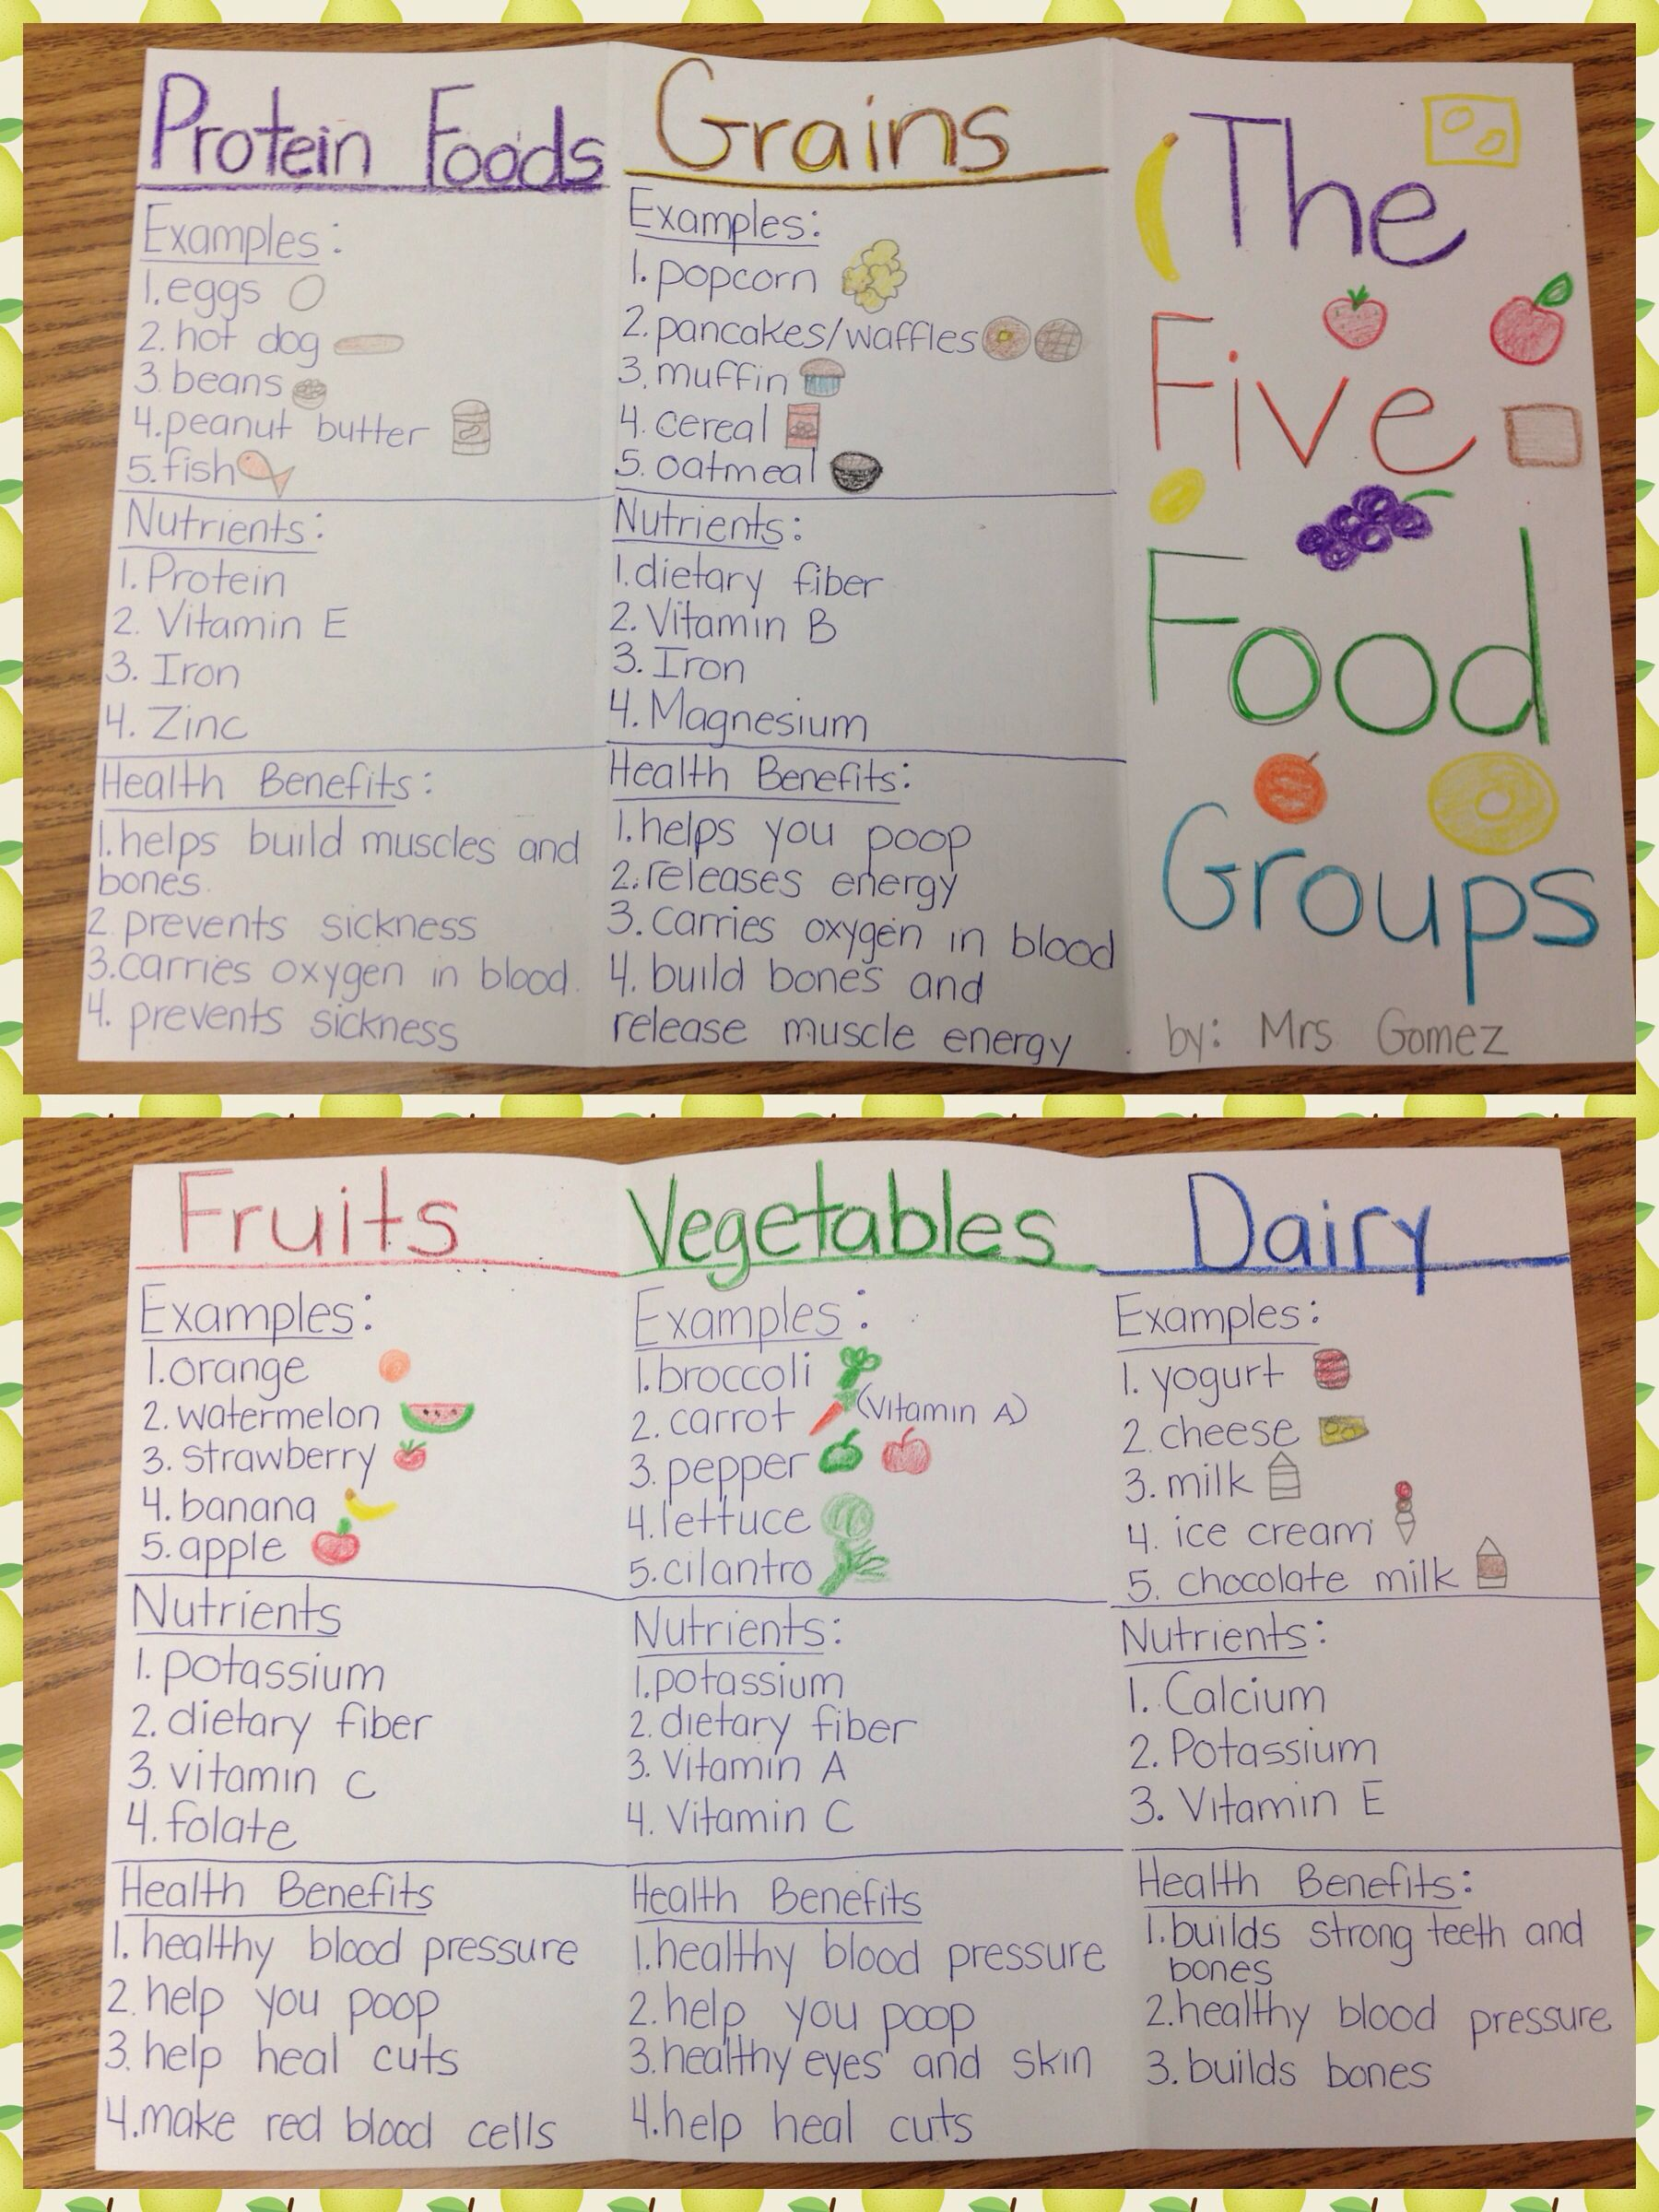 This Is A Brochure I Made With My Students In Which They Wrote About The Five Food Groups I